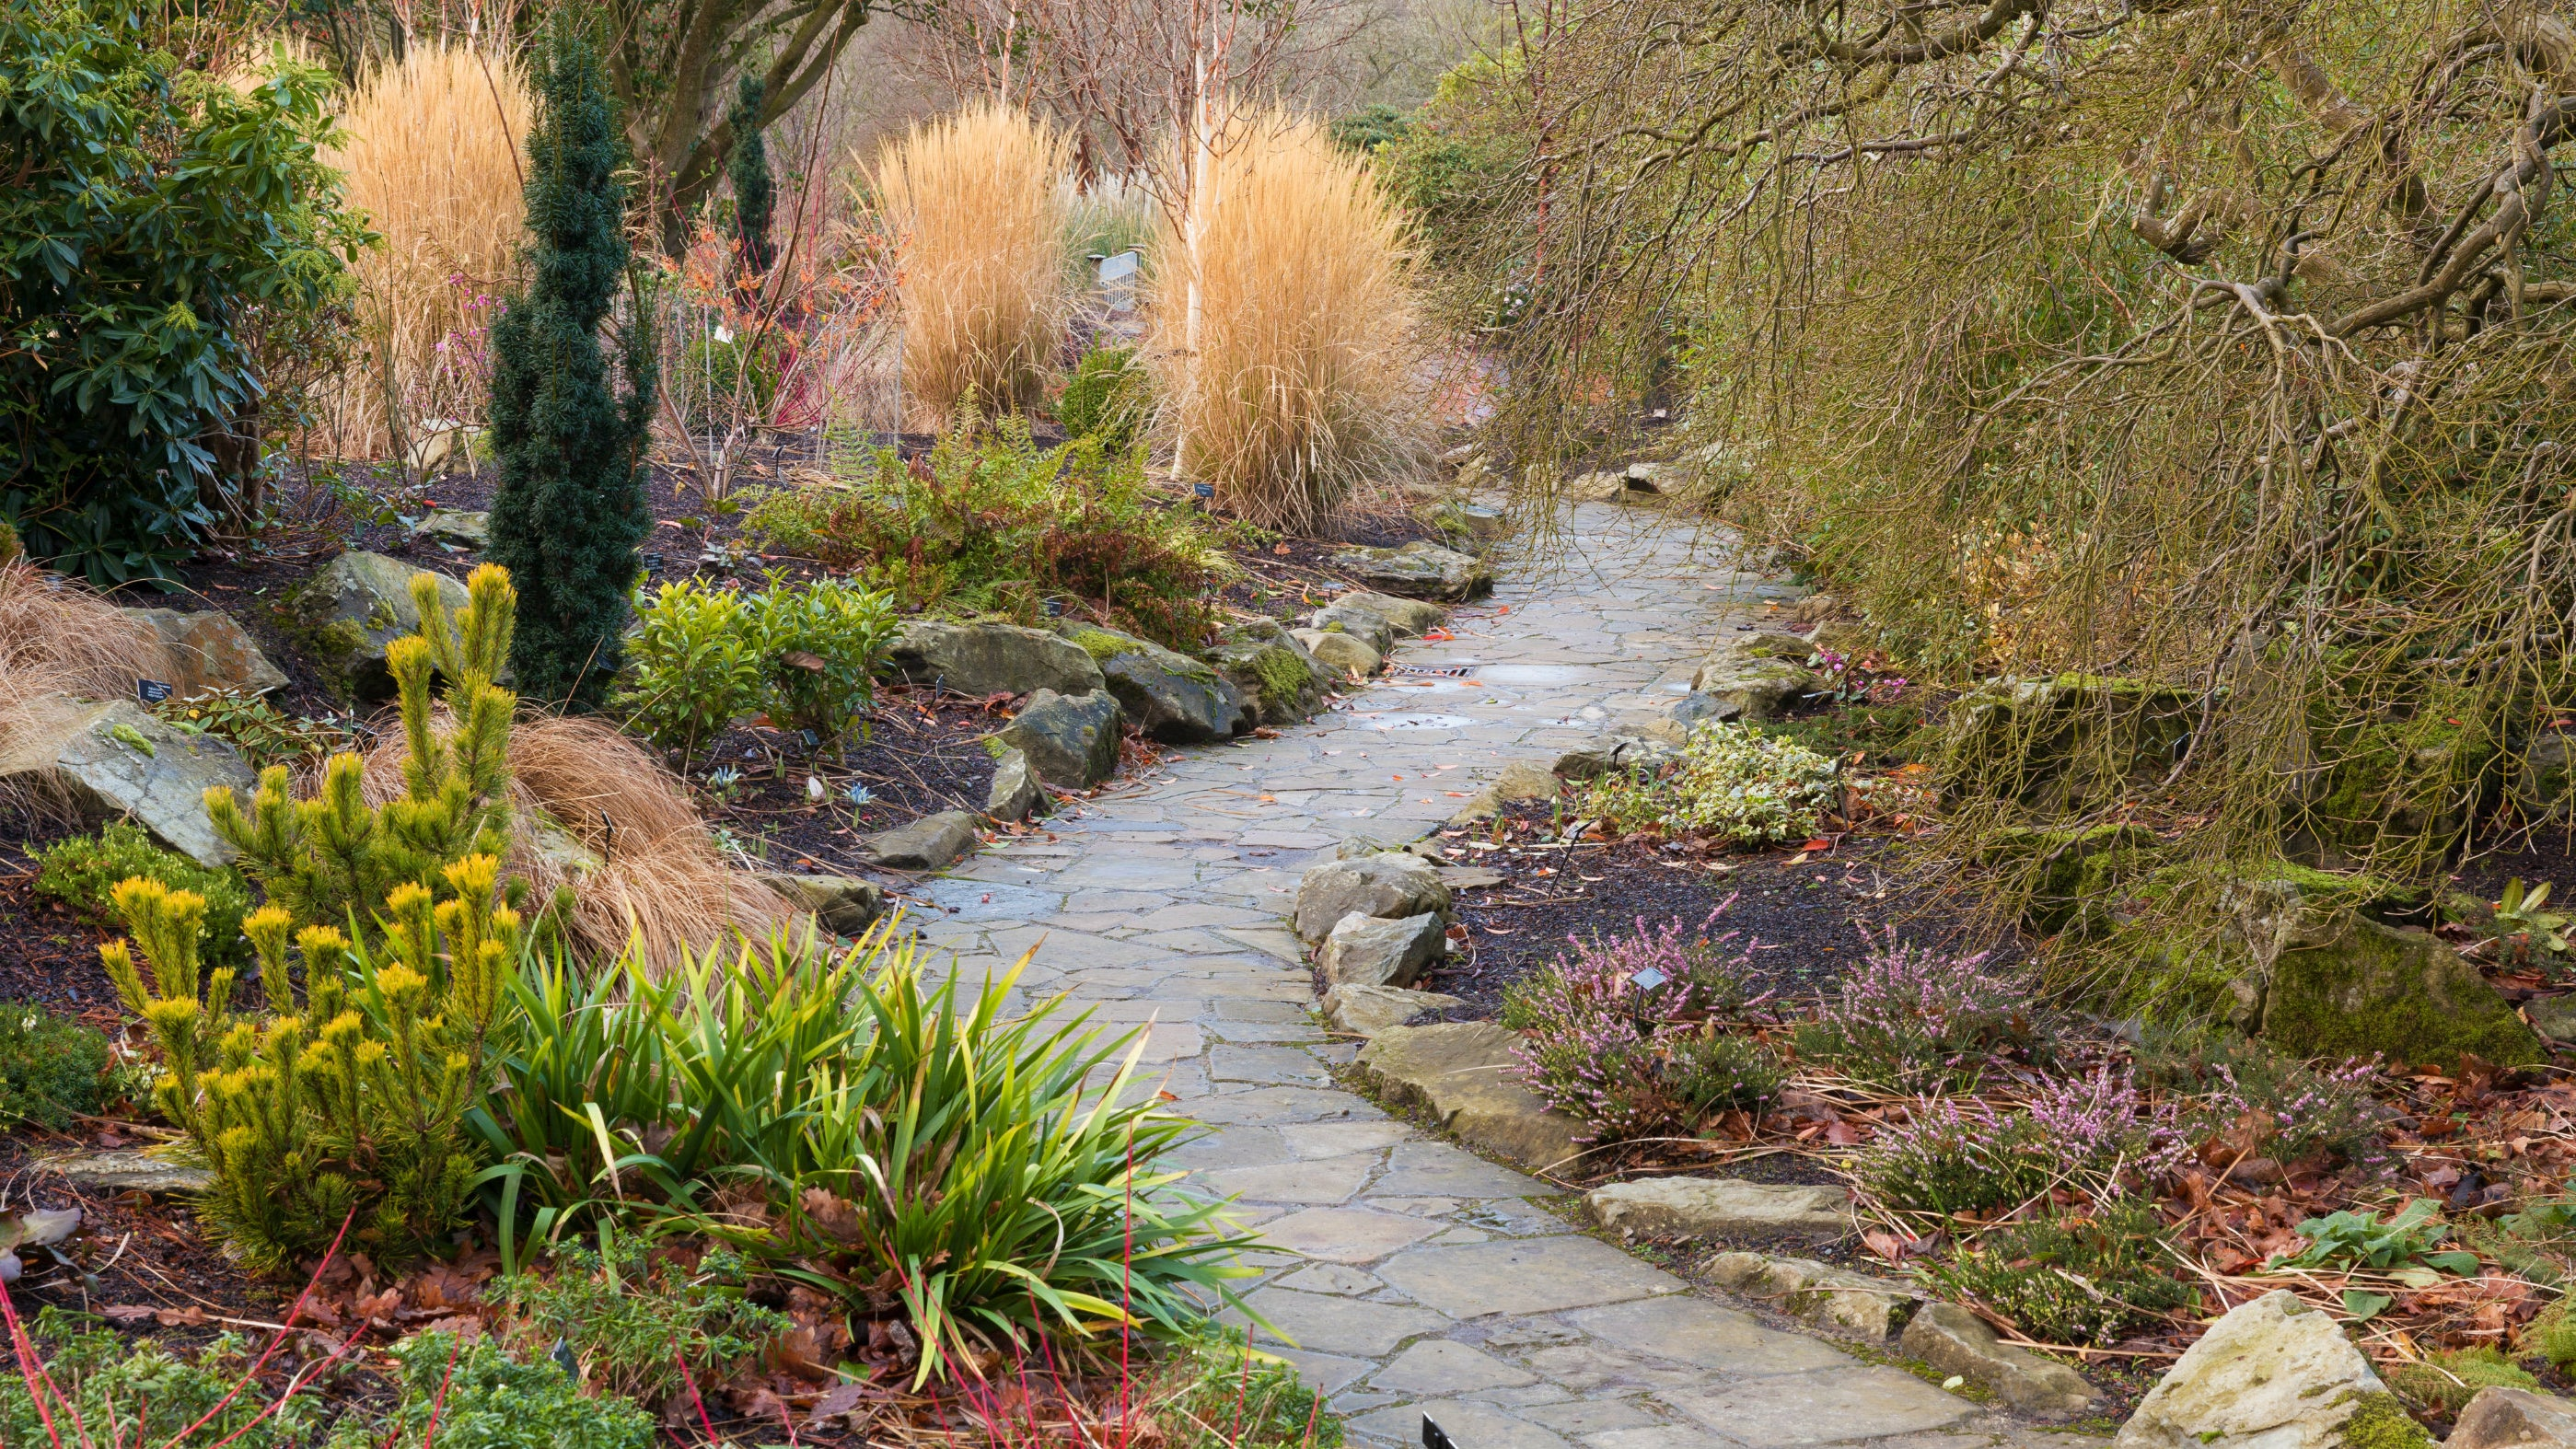 A path winds through colourful trees, shrubs and grasses in the Winter Garden at Bodnant